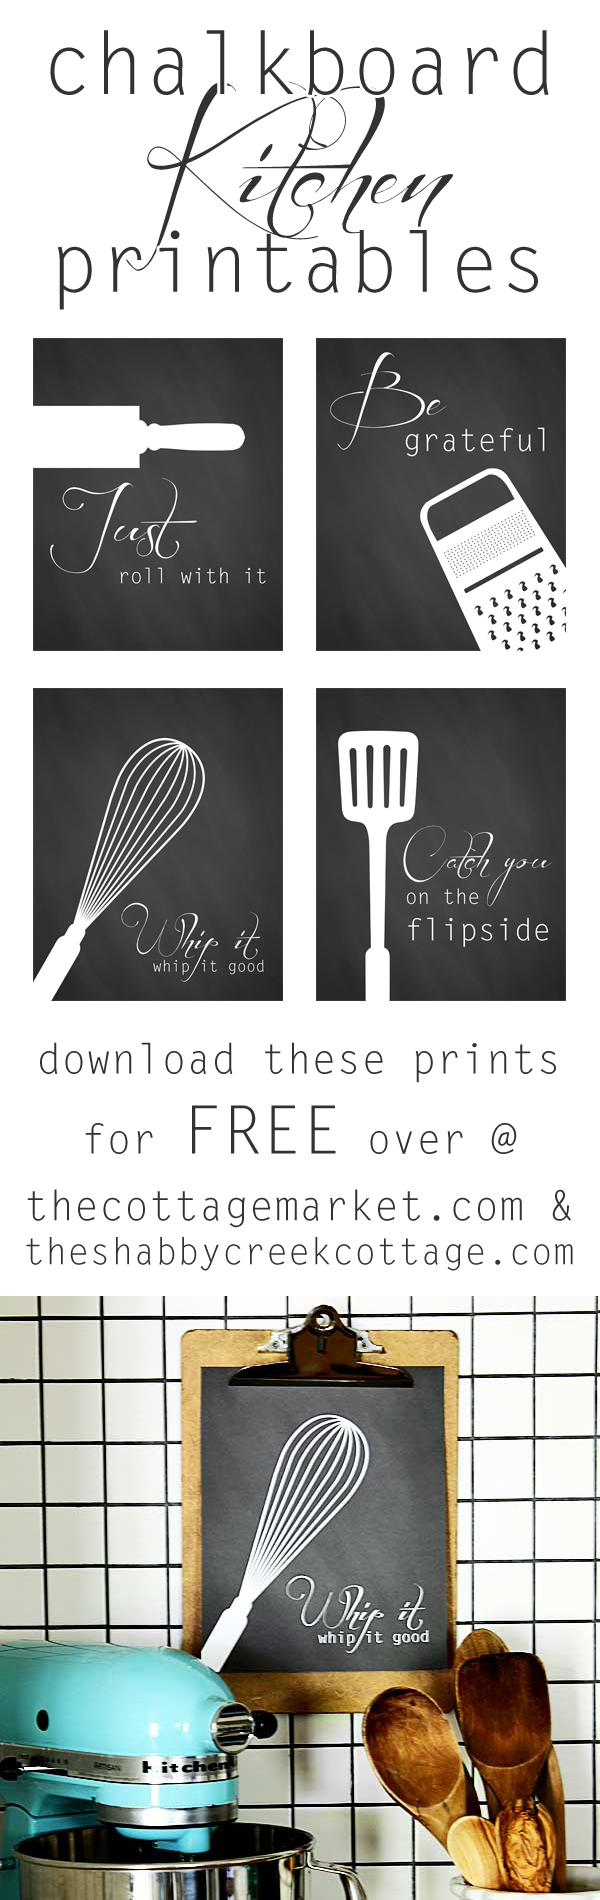 photograph about Free Printable Kitchen Art titled Free of charge kitchen area artwork printables - a established of 4